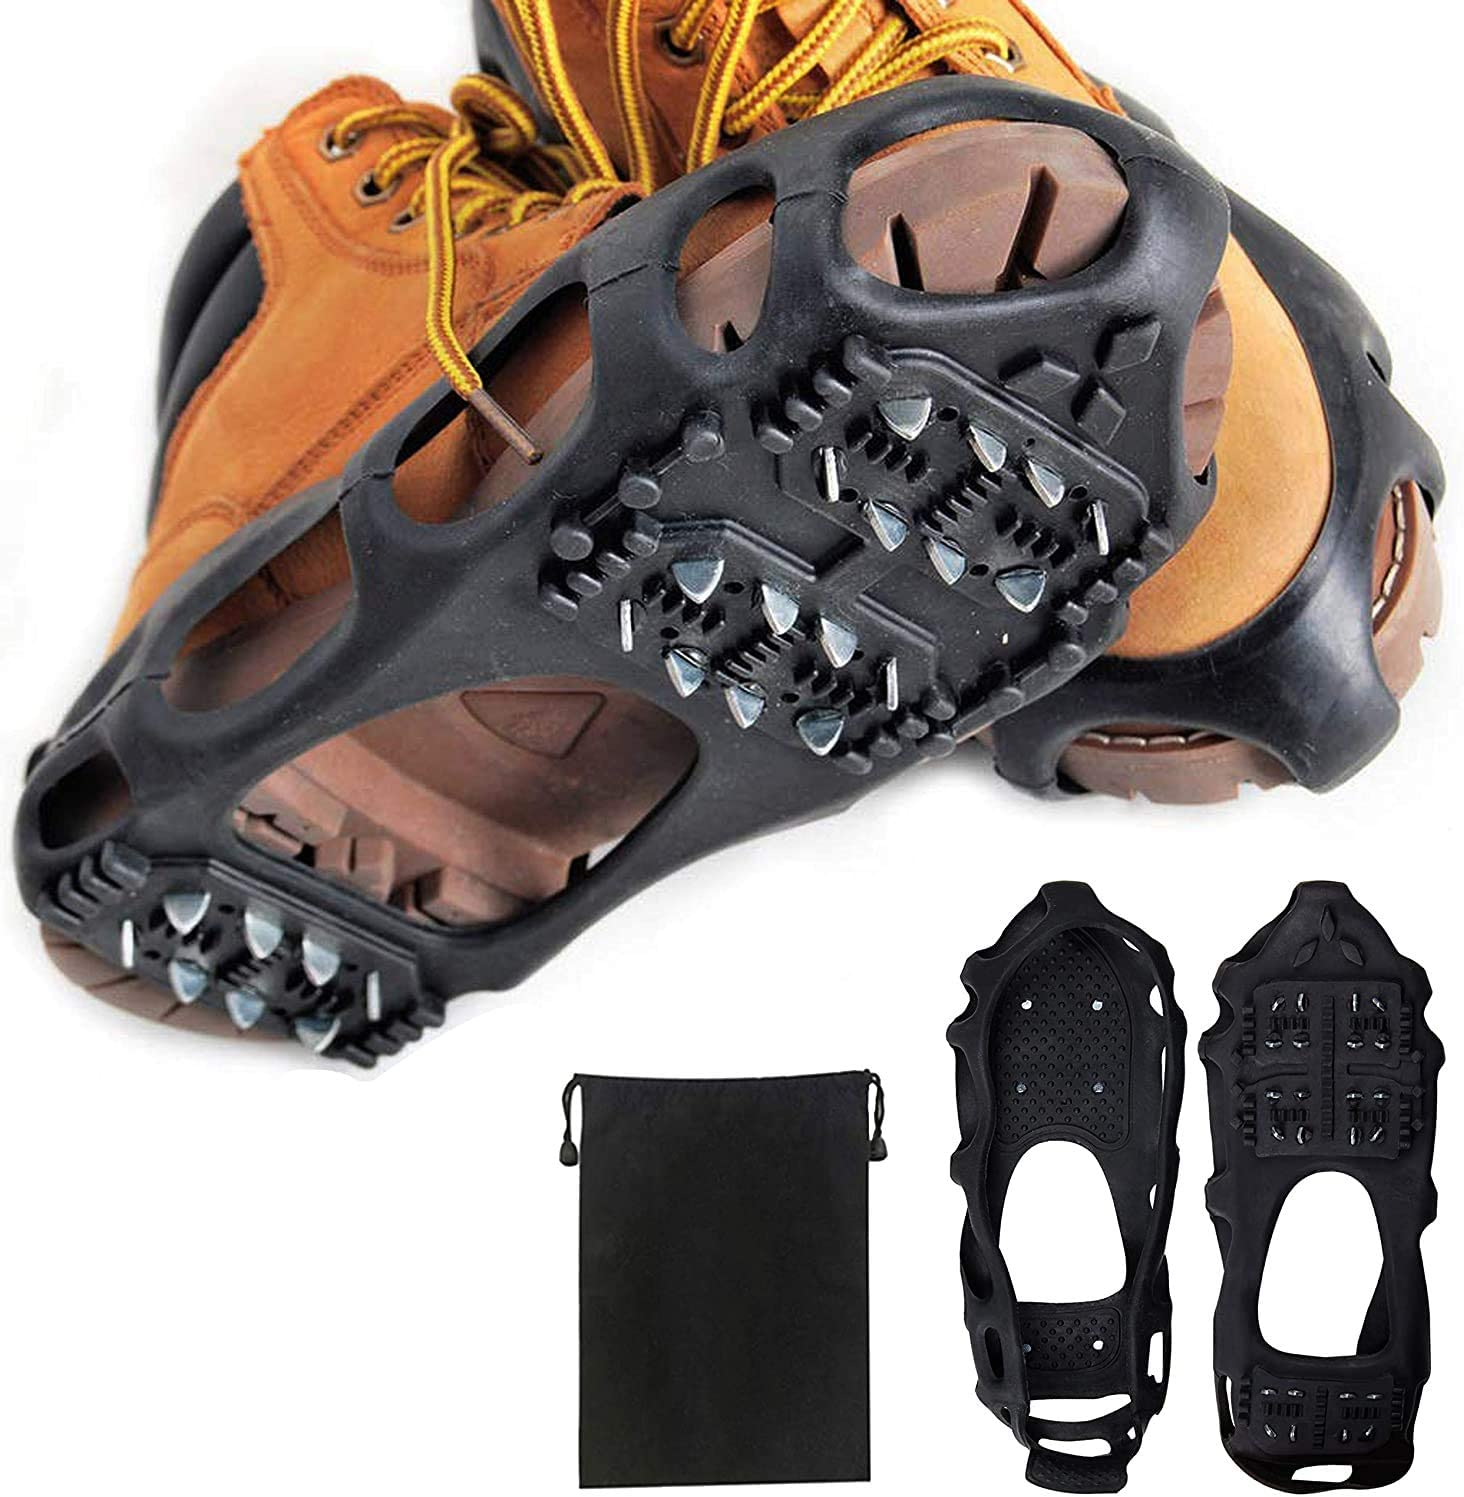 Ice Cleats Walking Jogging Walking On Ice Snow Boots Shoes Crampons Traction Cleats Grippers Spikes Hiking Winter Walker Traction Device for Hiking